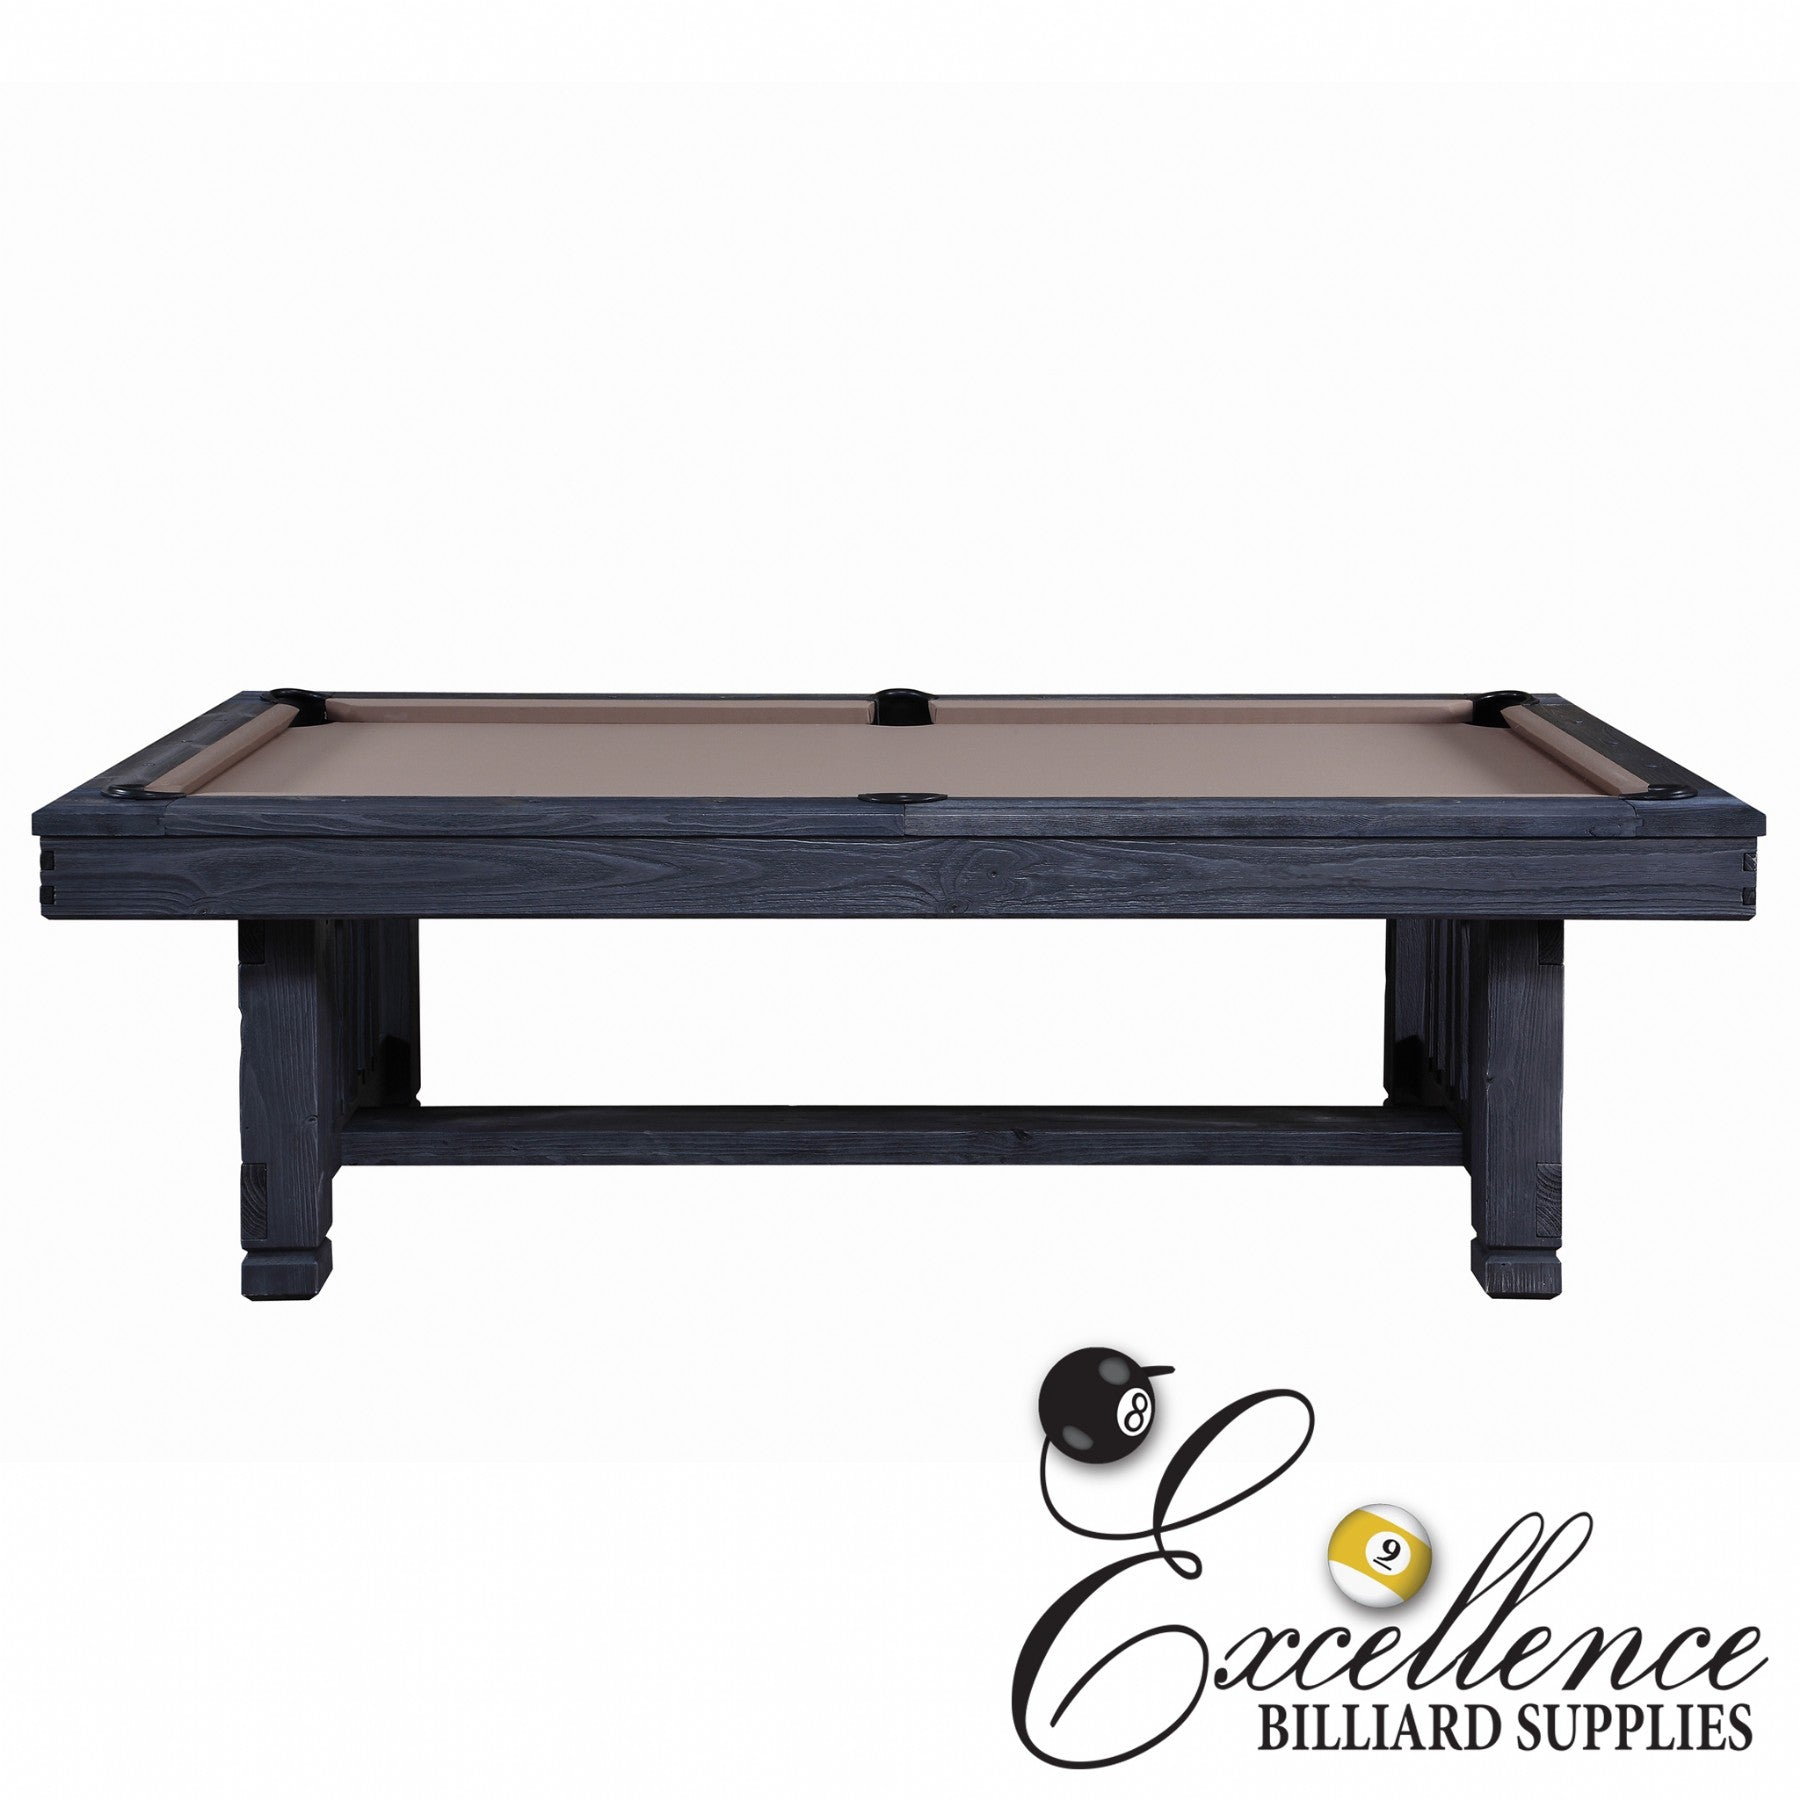 8 Cassia Pool Table 2018 Range Excellence Billiards NZL